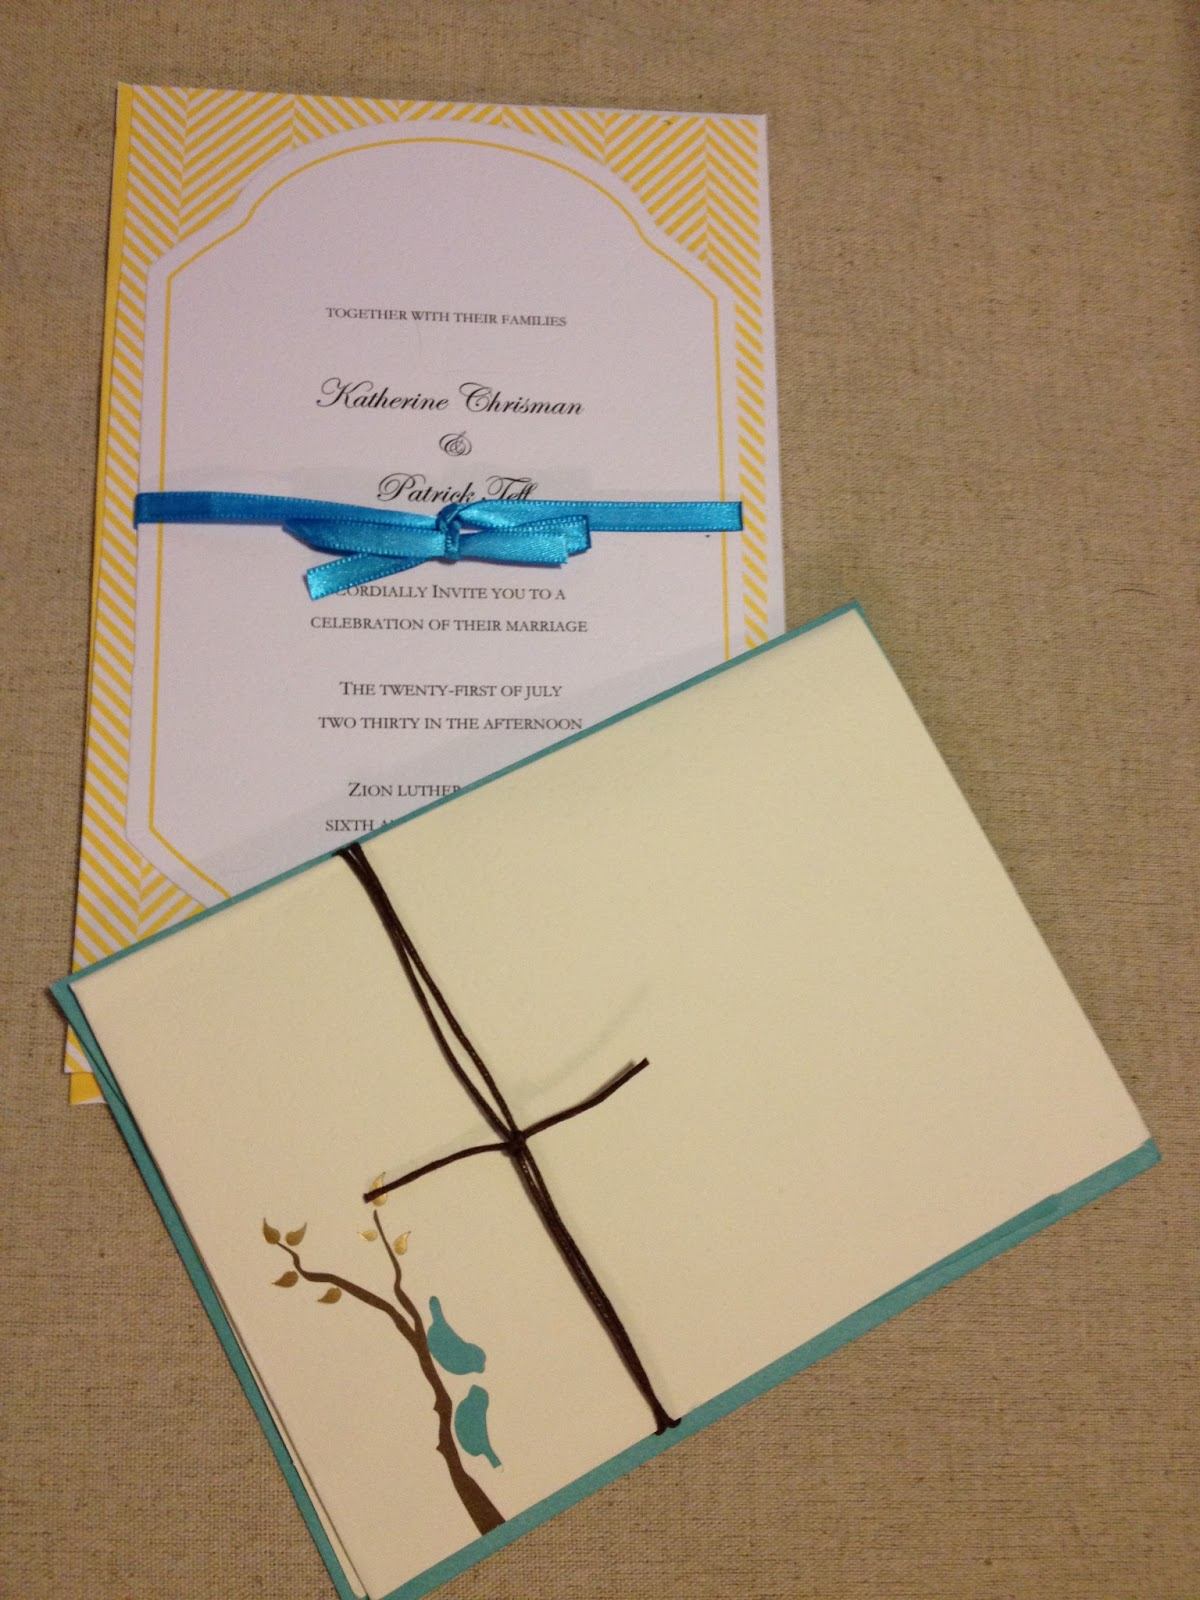 Michaels crafts wedding invitations - The Wedding Invitations We Made From Kits Found At Michael S Art And Craft Supply Store